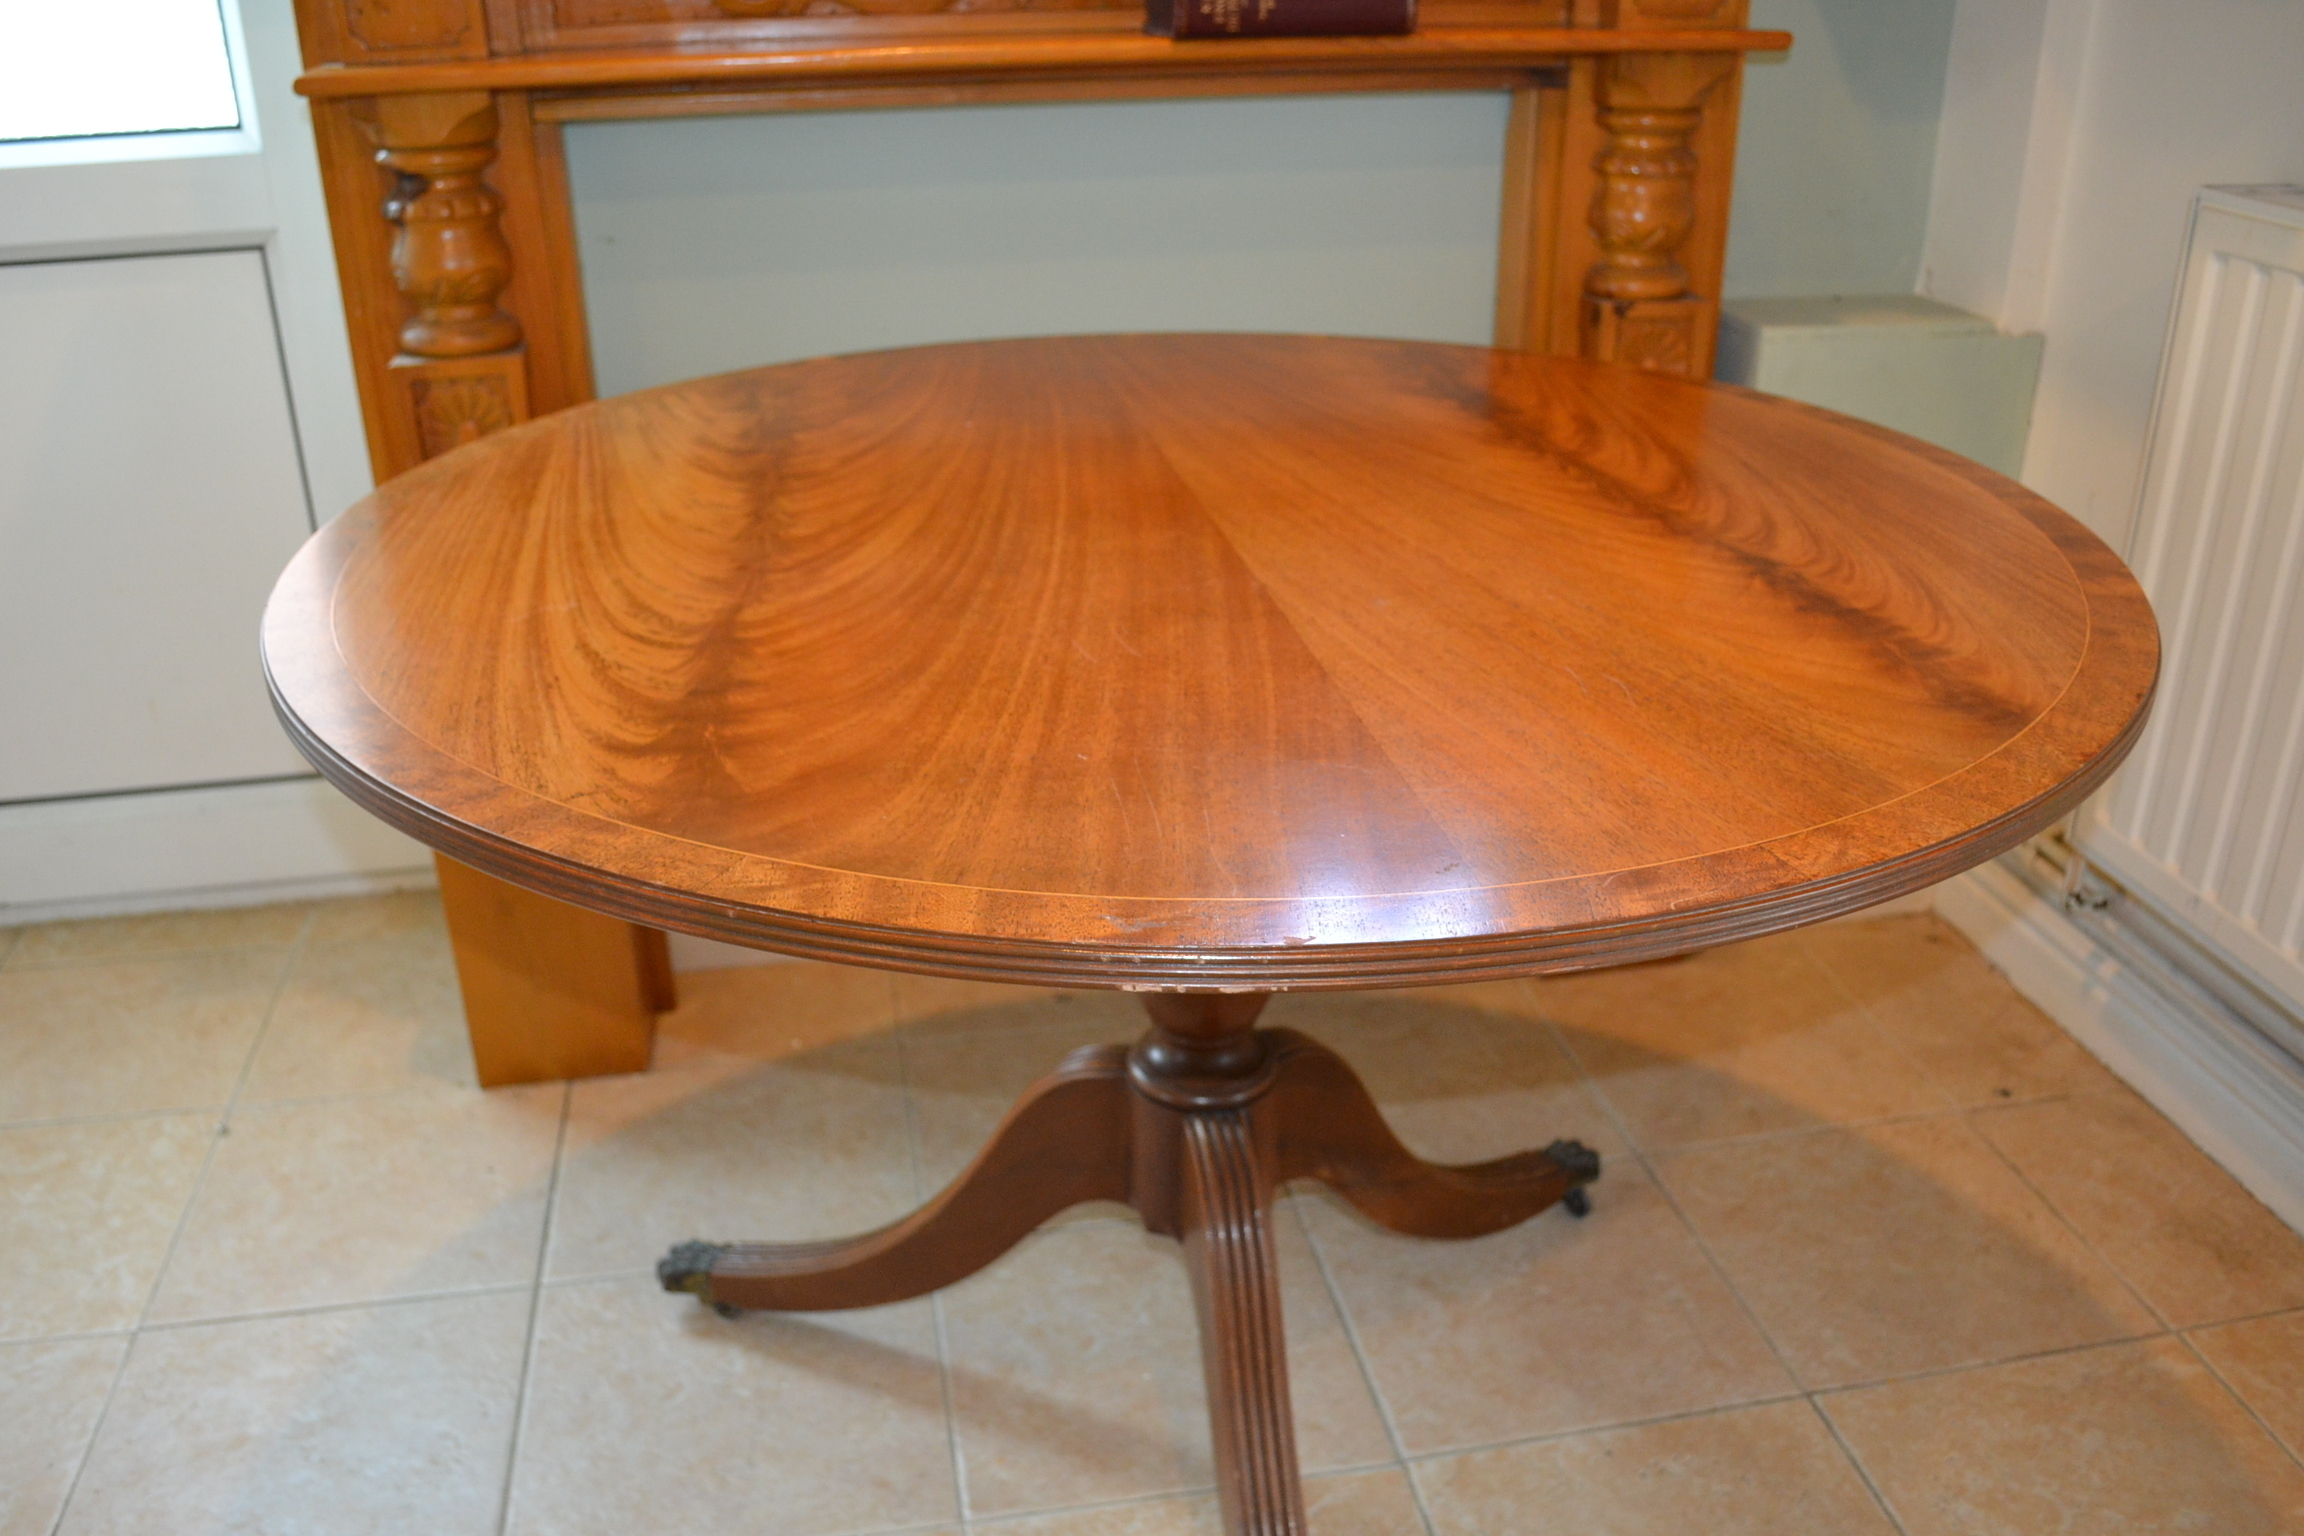 Round Table Orange.Round Tilt Top Dining Table Beautiful Wooden Tripod Table 106 Cm Wide